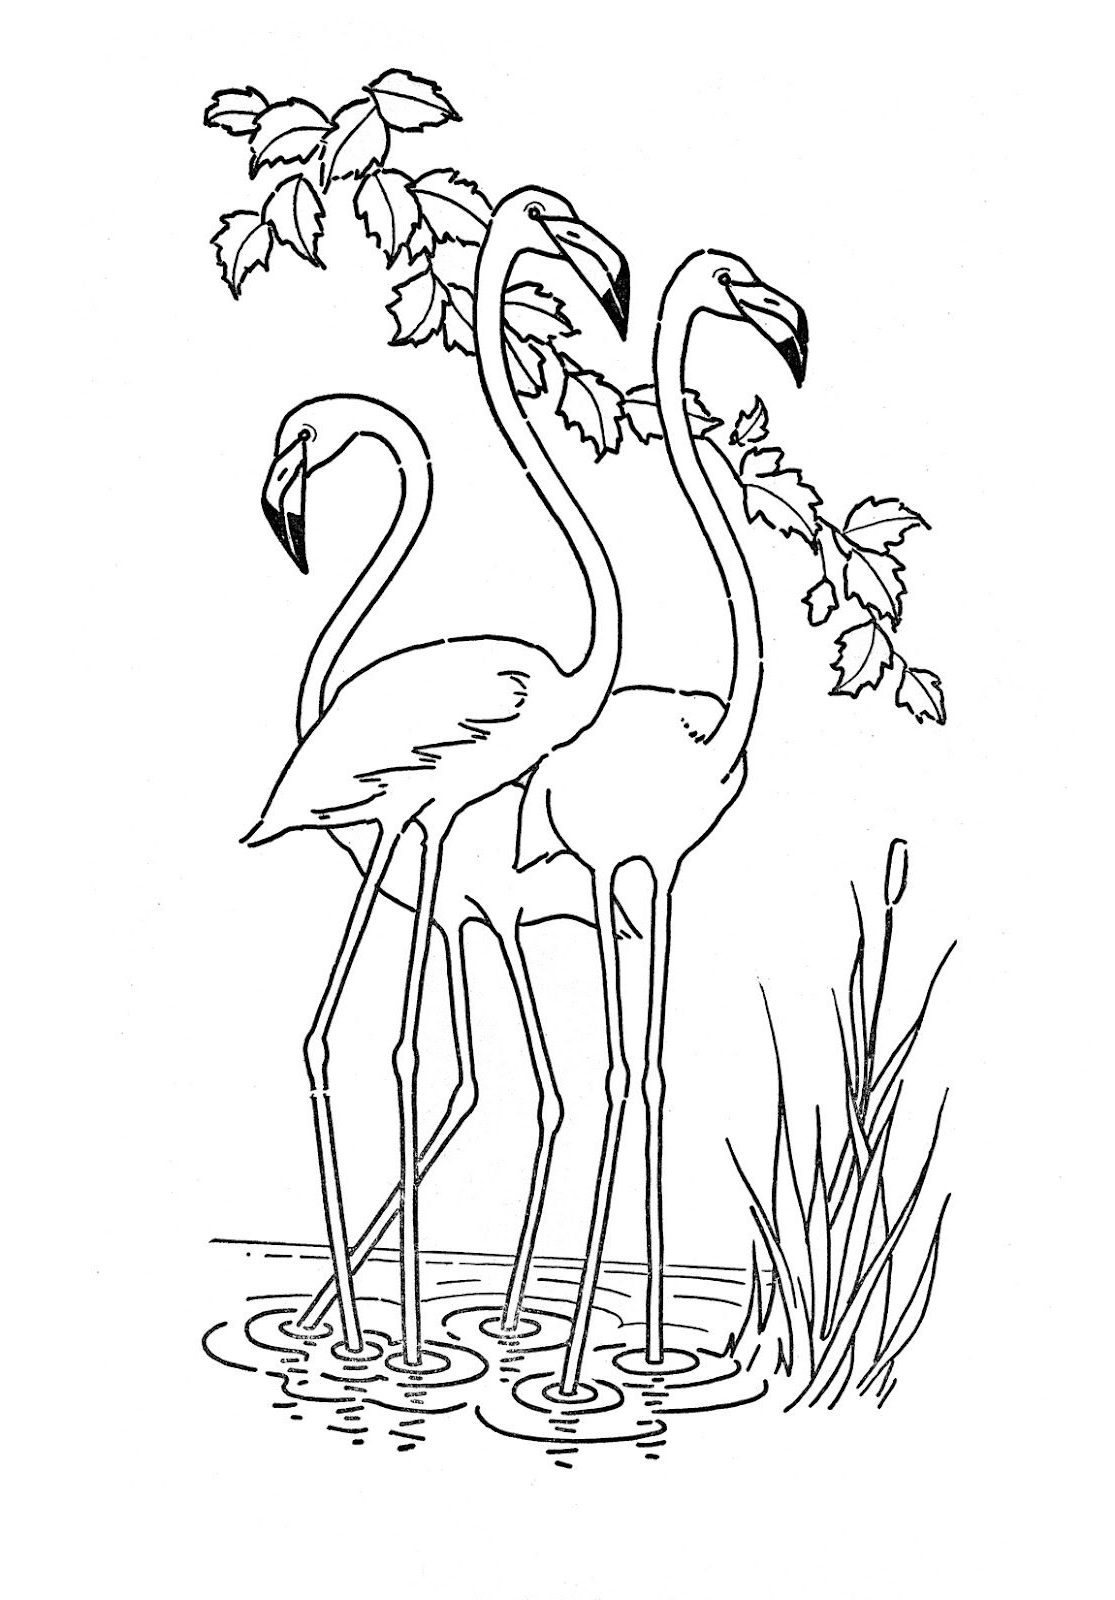 coloring the animal animal coloring pages 17 coloring kids the animal coloring